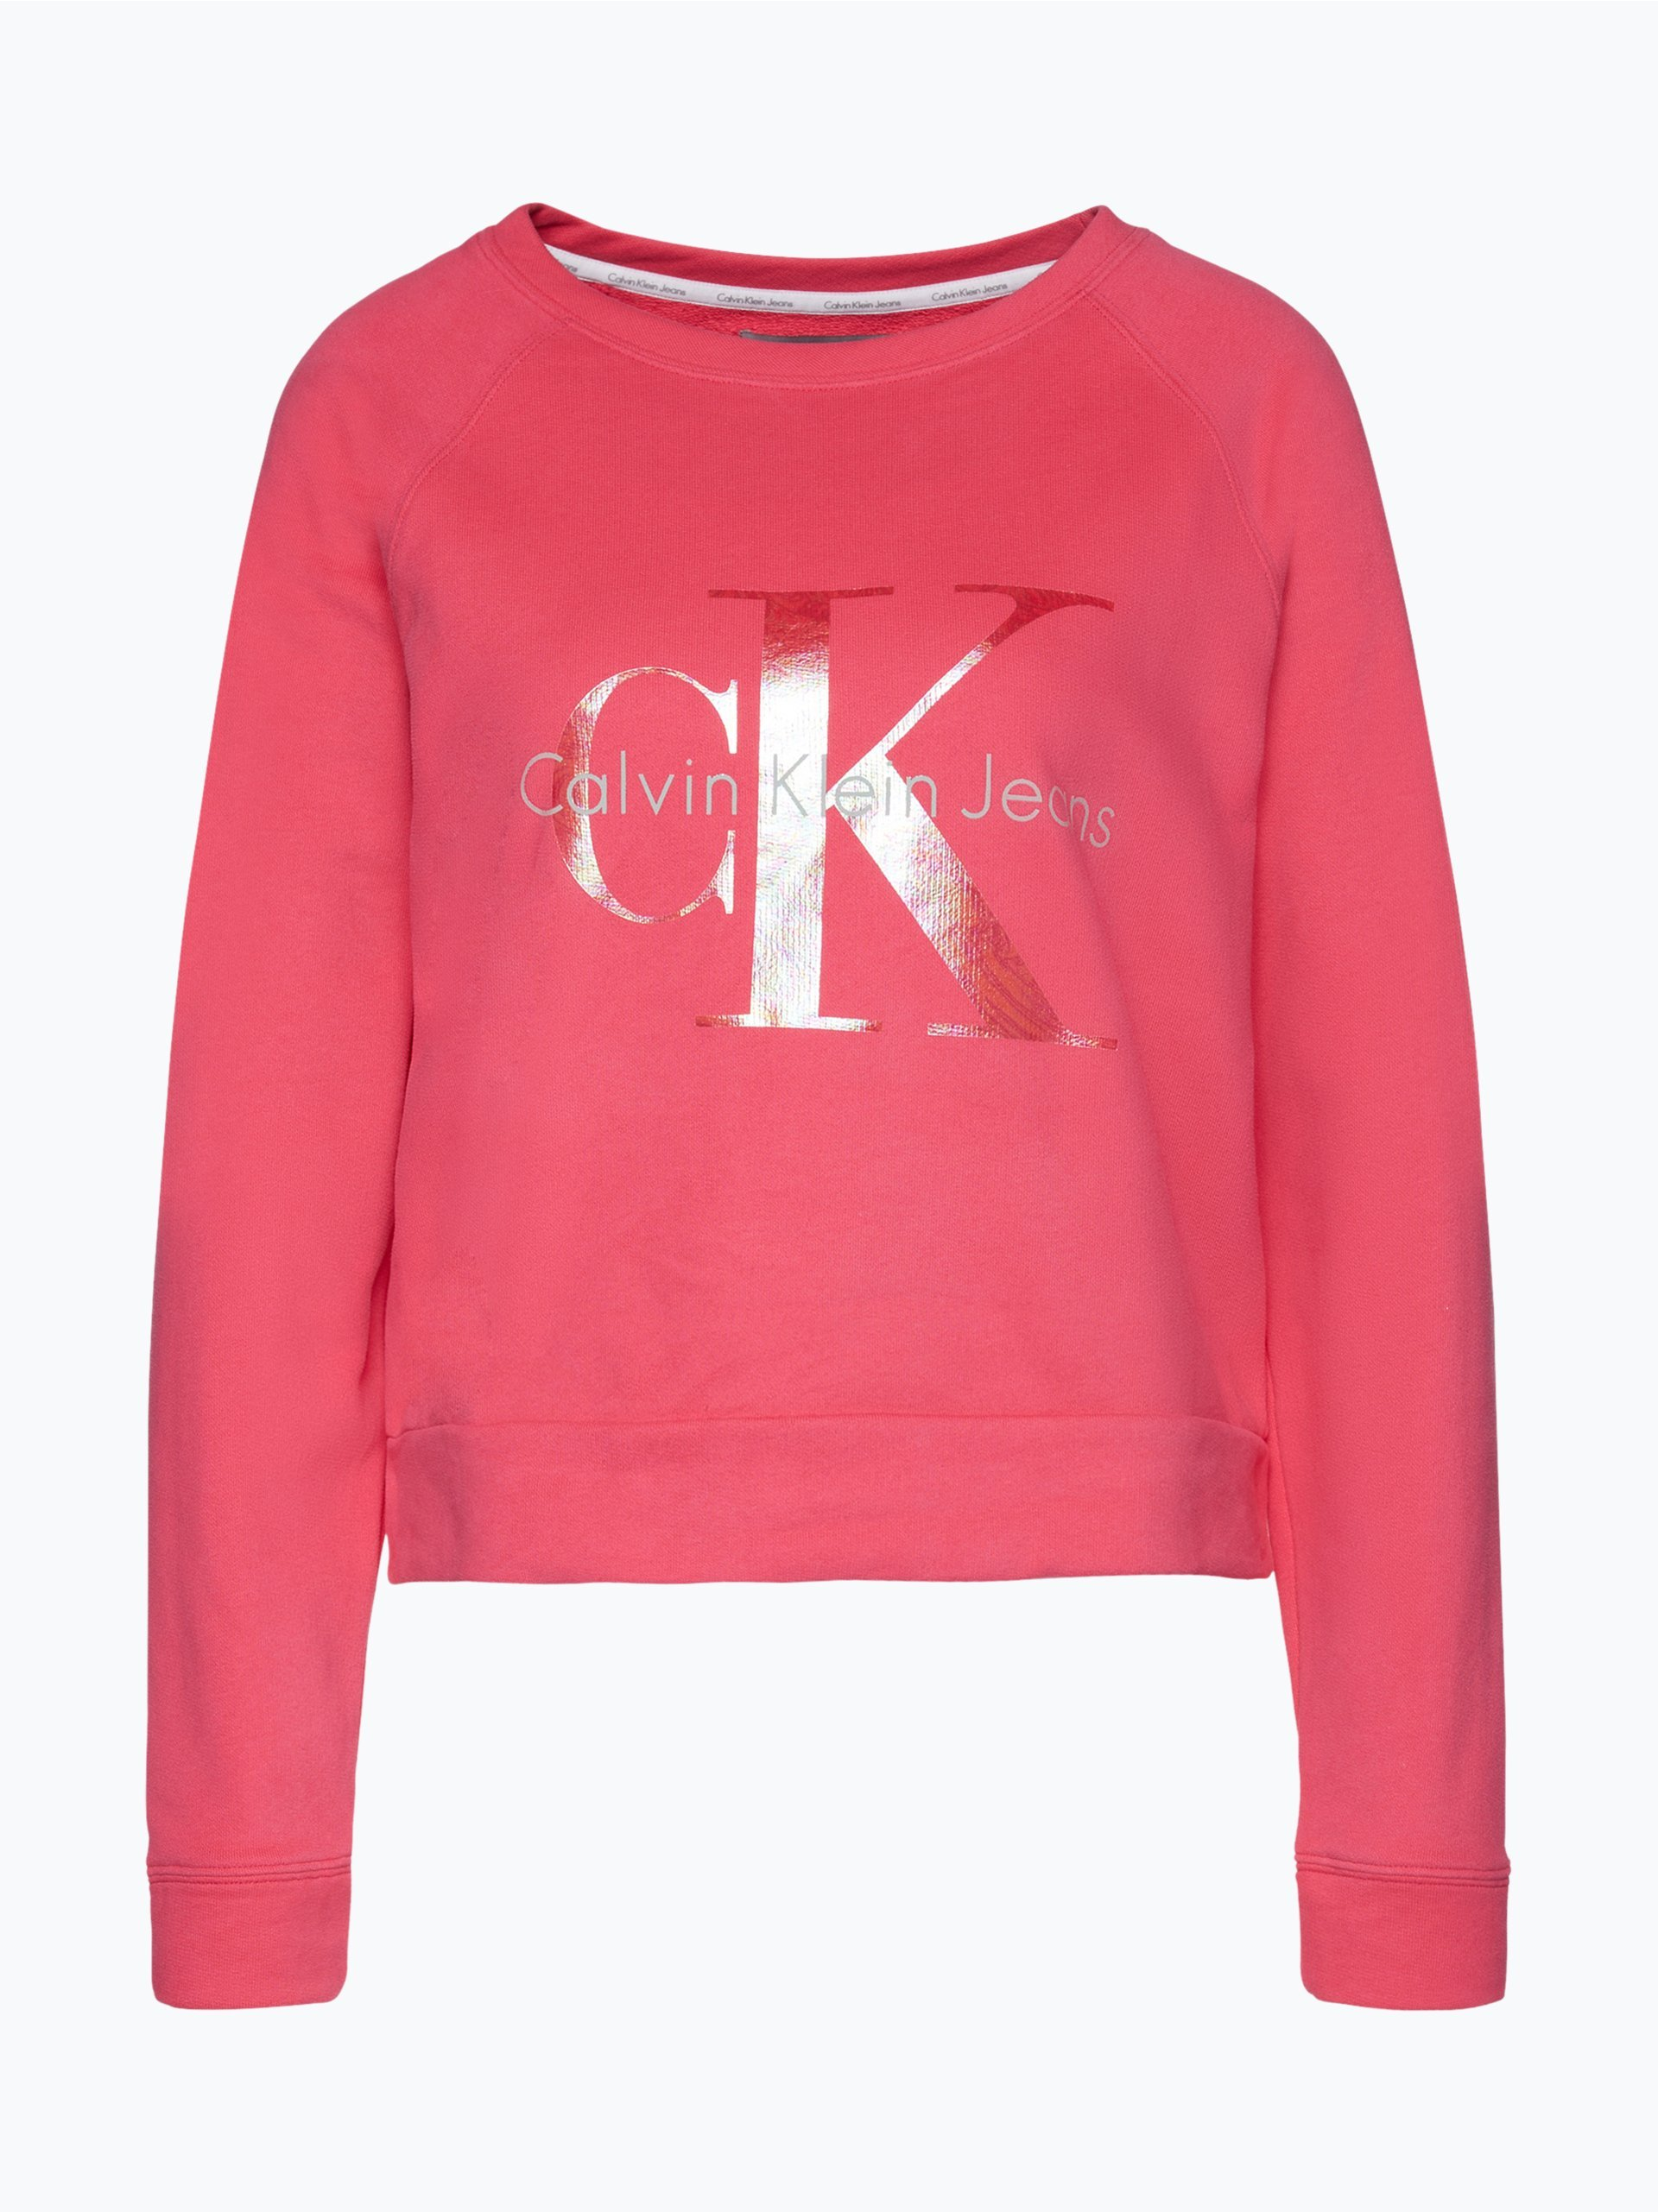 calvin klein jeans damen sweatshirt pink uni online kaufen. Black Bedroom Furniture Sets. Home Design Ideas